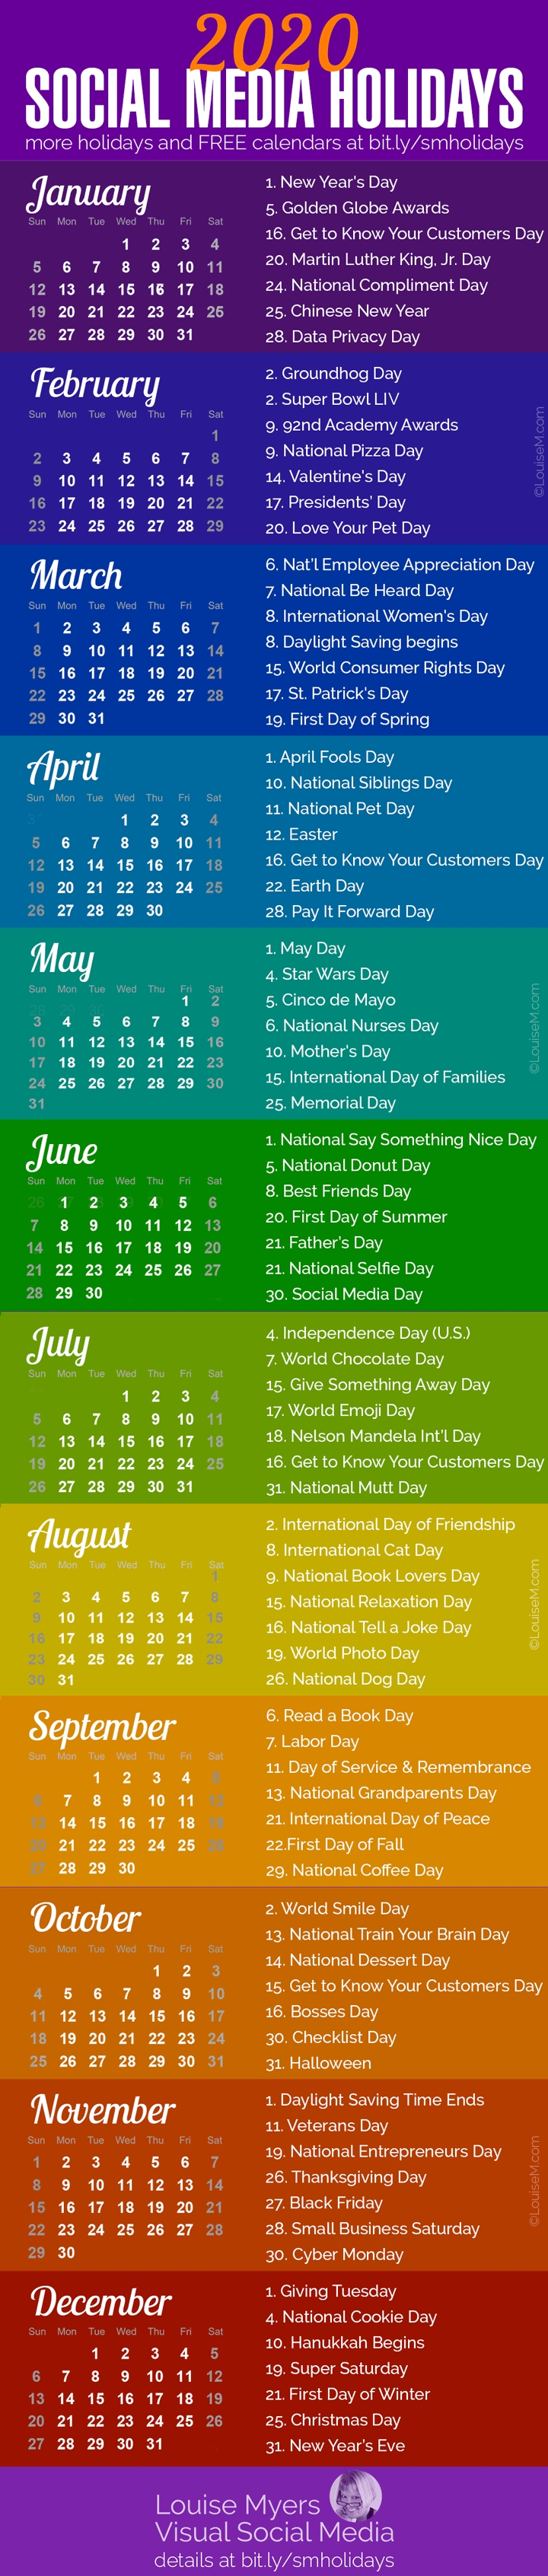 84 Social Media Holidays You Need In 2020: Indispensable! pertaining to Yearly Calendar Of Special Days 2020